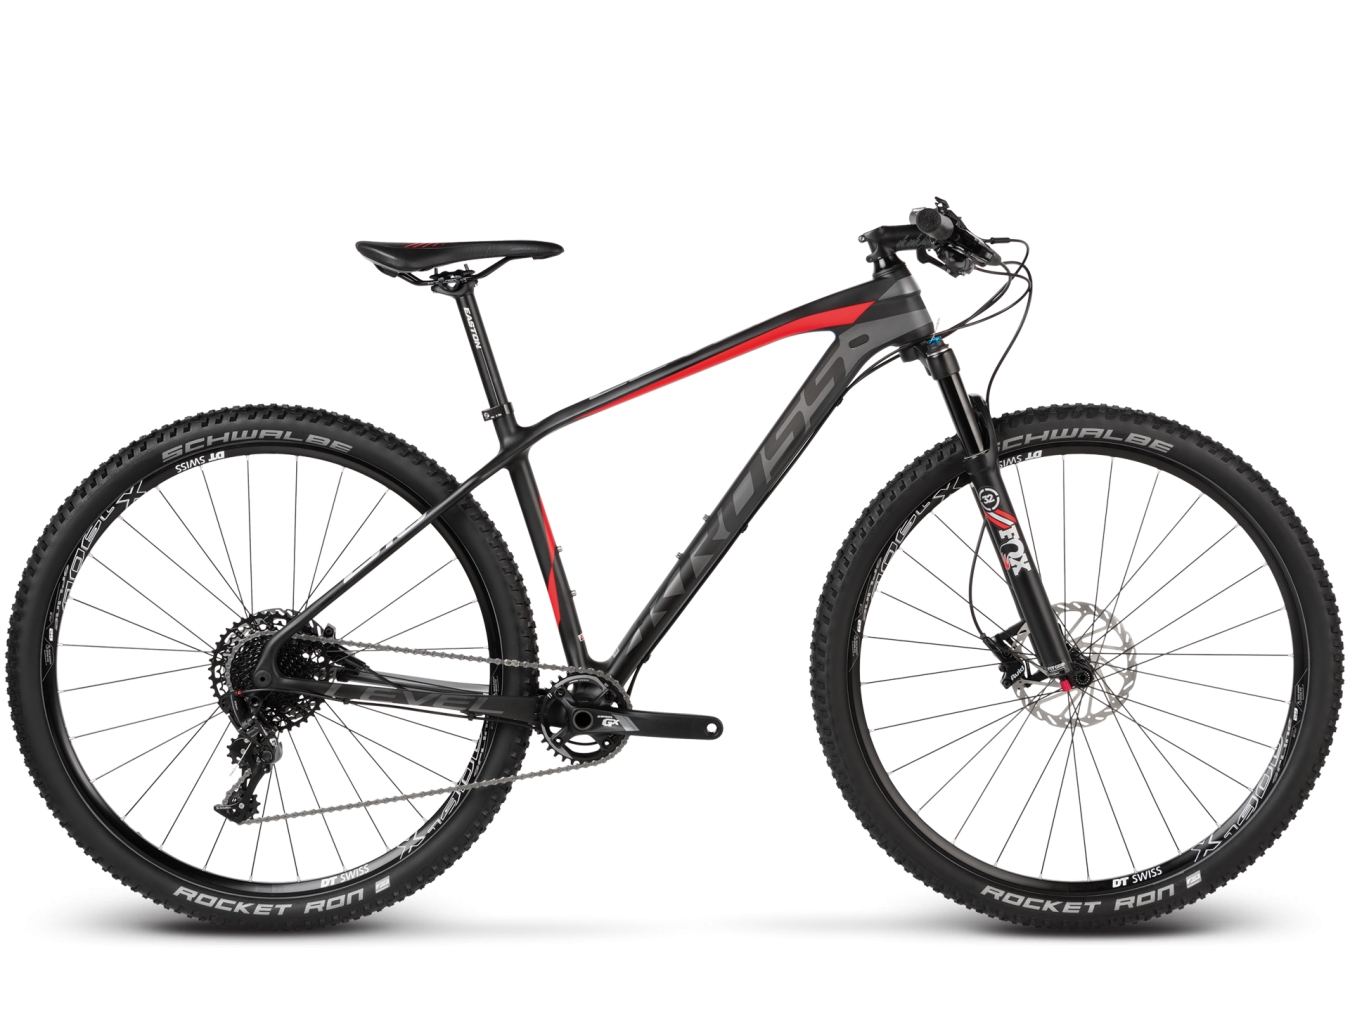 Bike Level B10 Bikes Mountain Mtb Xc Kross